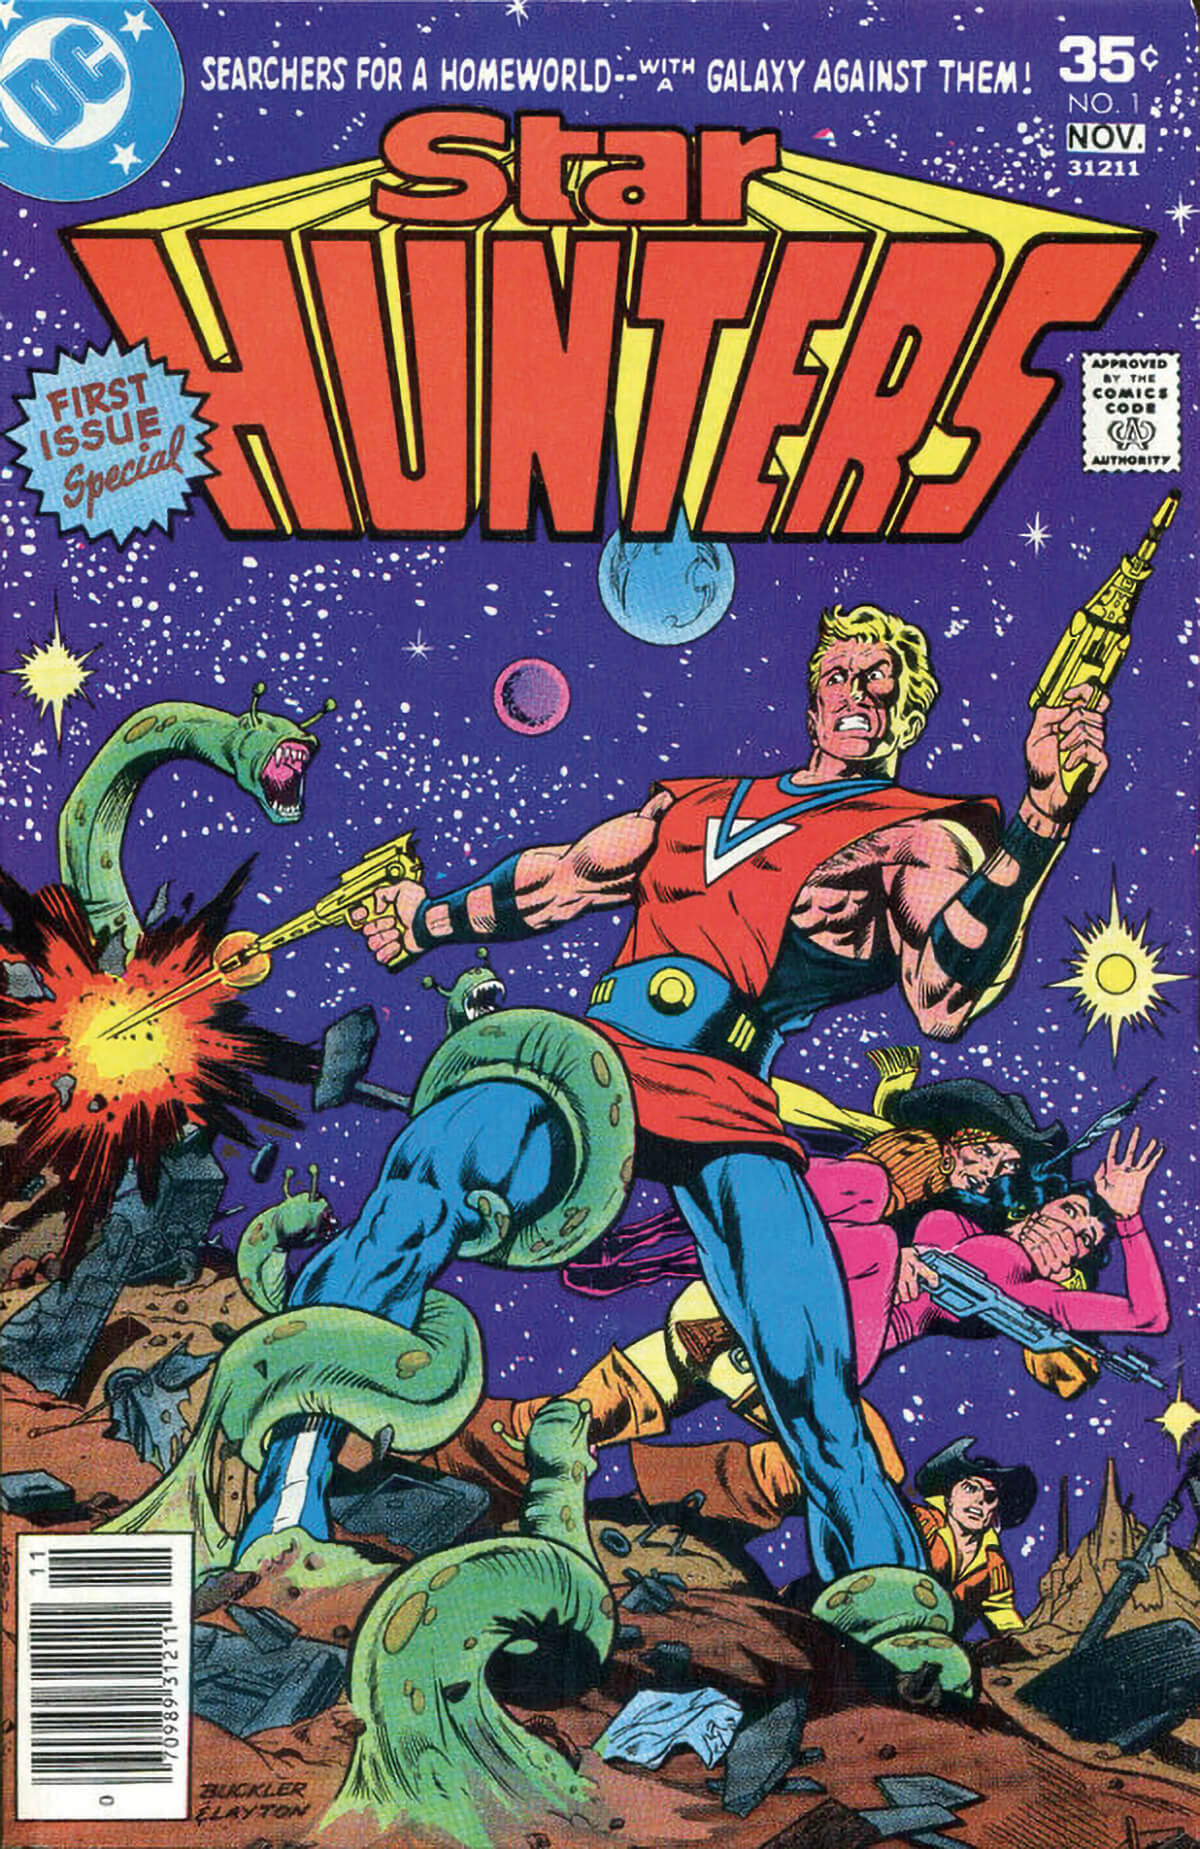 Star Hunters #1 published by DC Comics